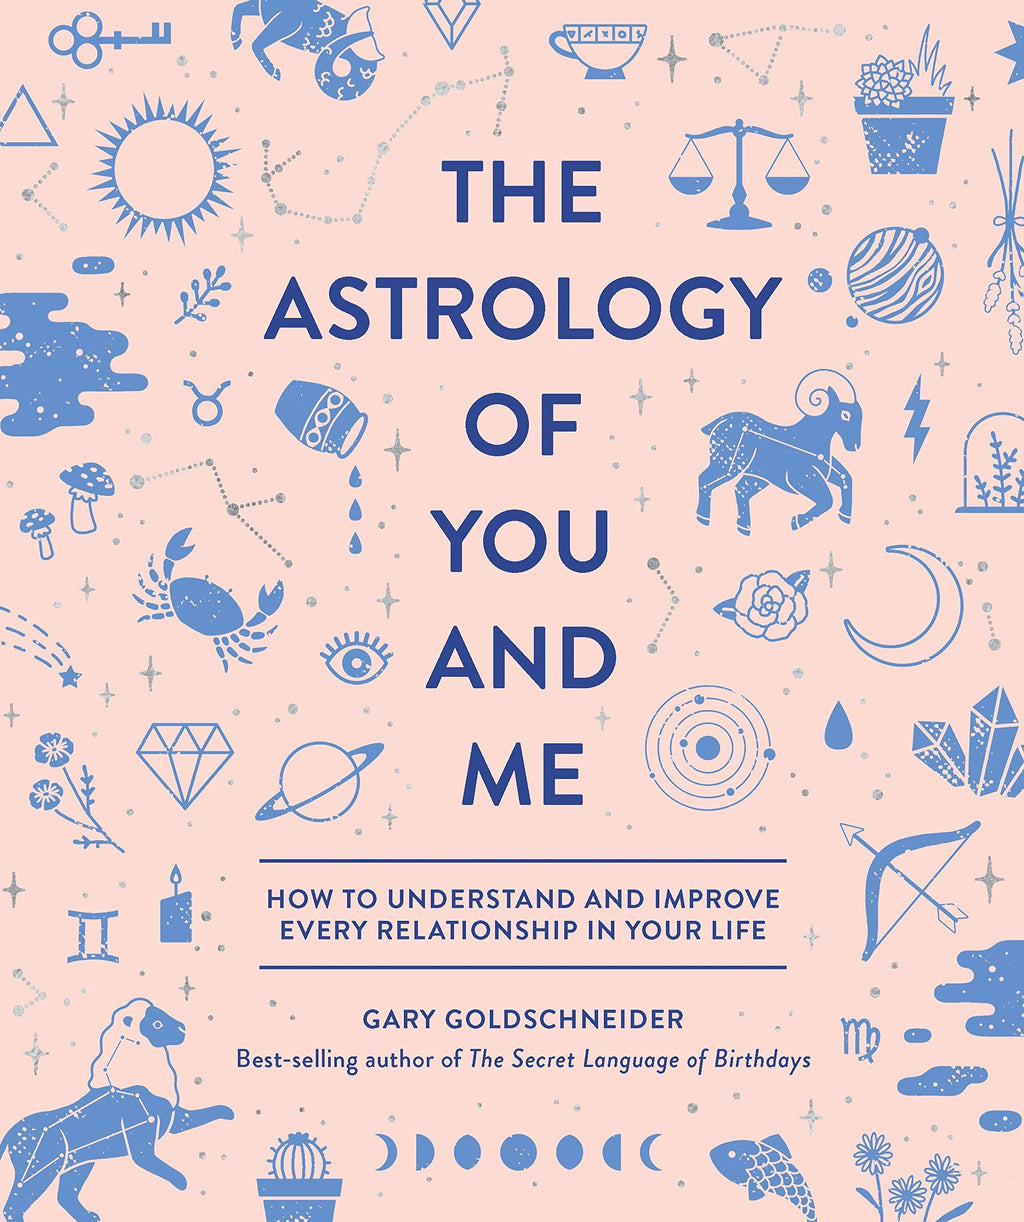 Astrology of You and Me by Gary Goldschneider